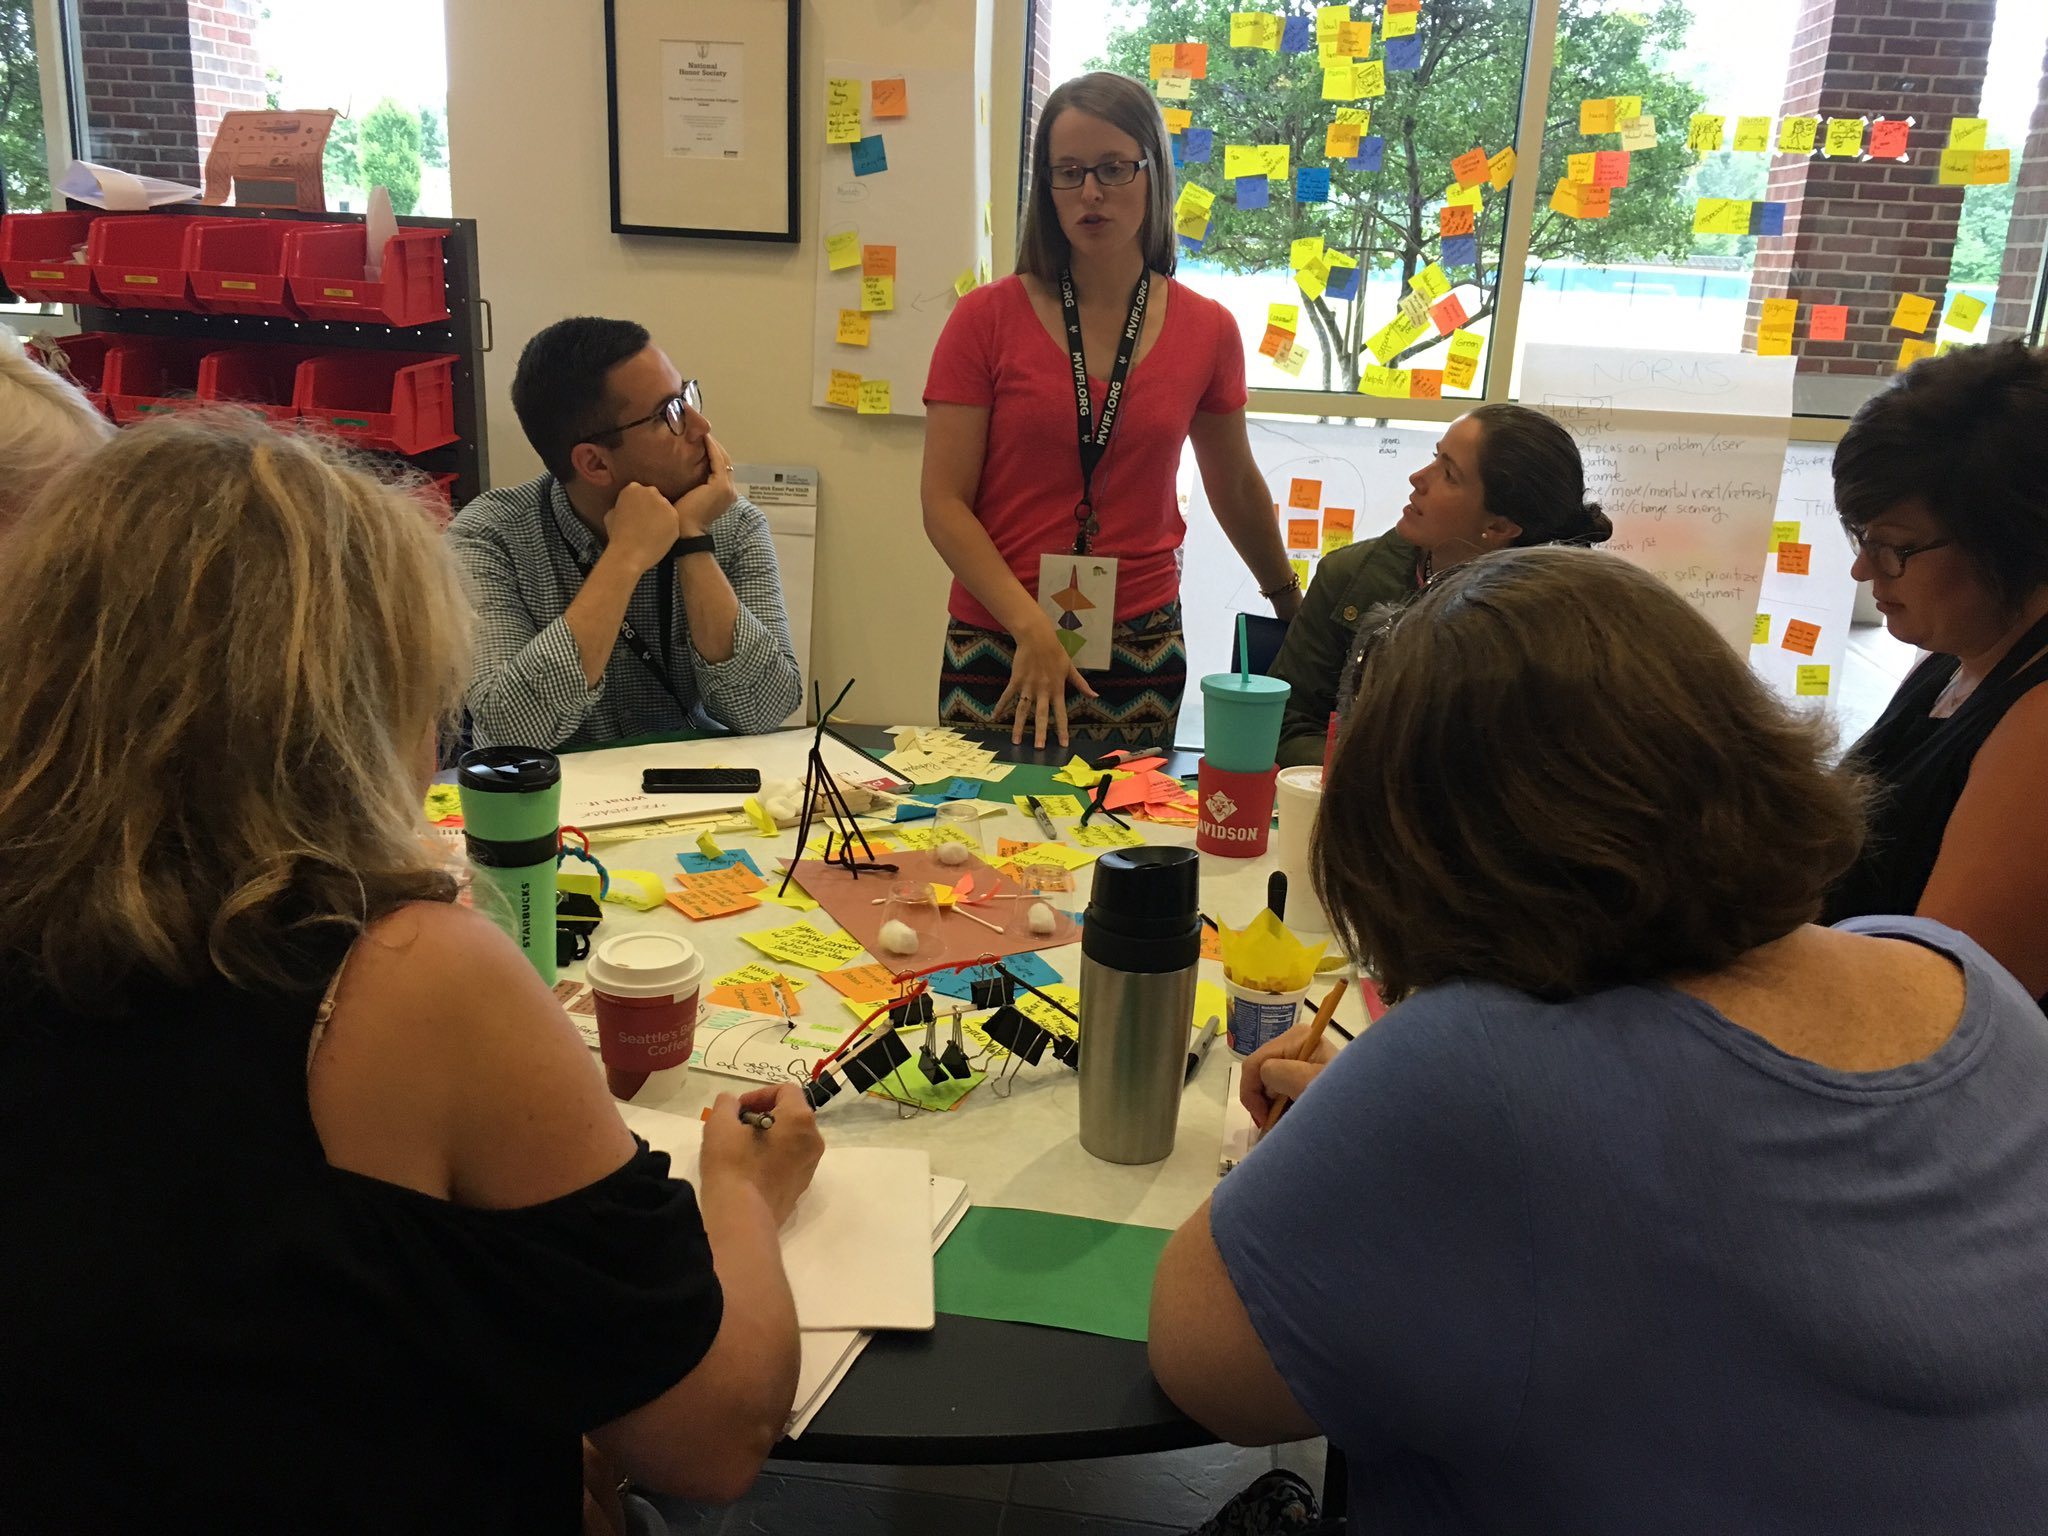 Going back to our user for more feedback, clarification, and further prototype iteration #fuse17 https://t.co/l2CL6Te0bG